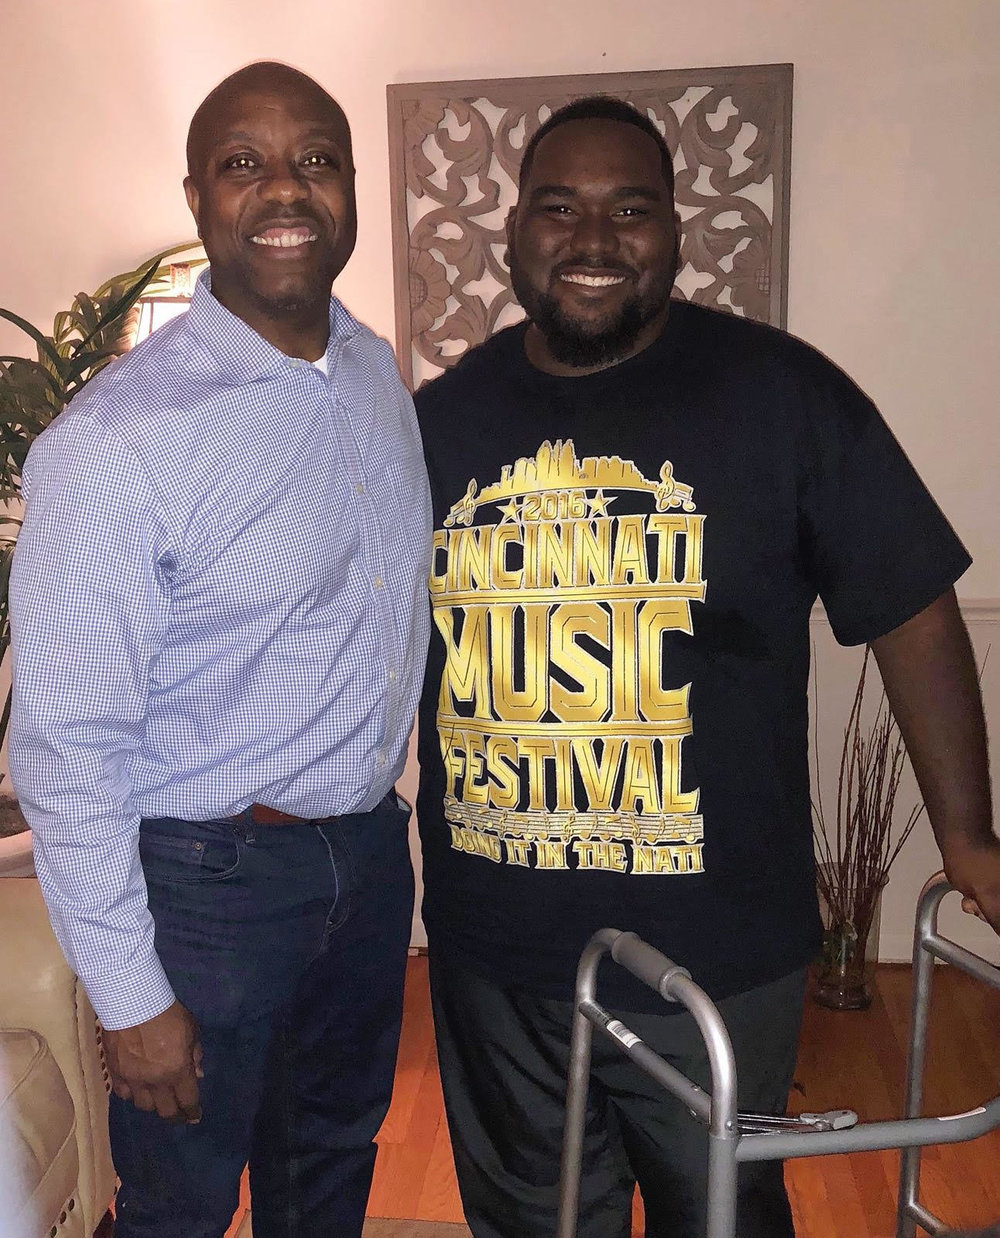 Sen. Tim Scott, R-S.C., visits his former intern, DaQuawn Bruce, after he was wounded in a drive-by shooting. (Courtesy Sen. Tim Scott's office)